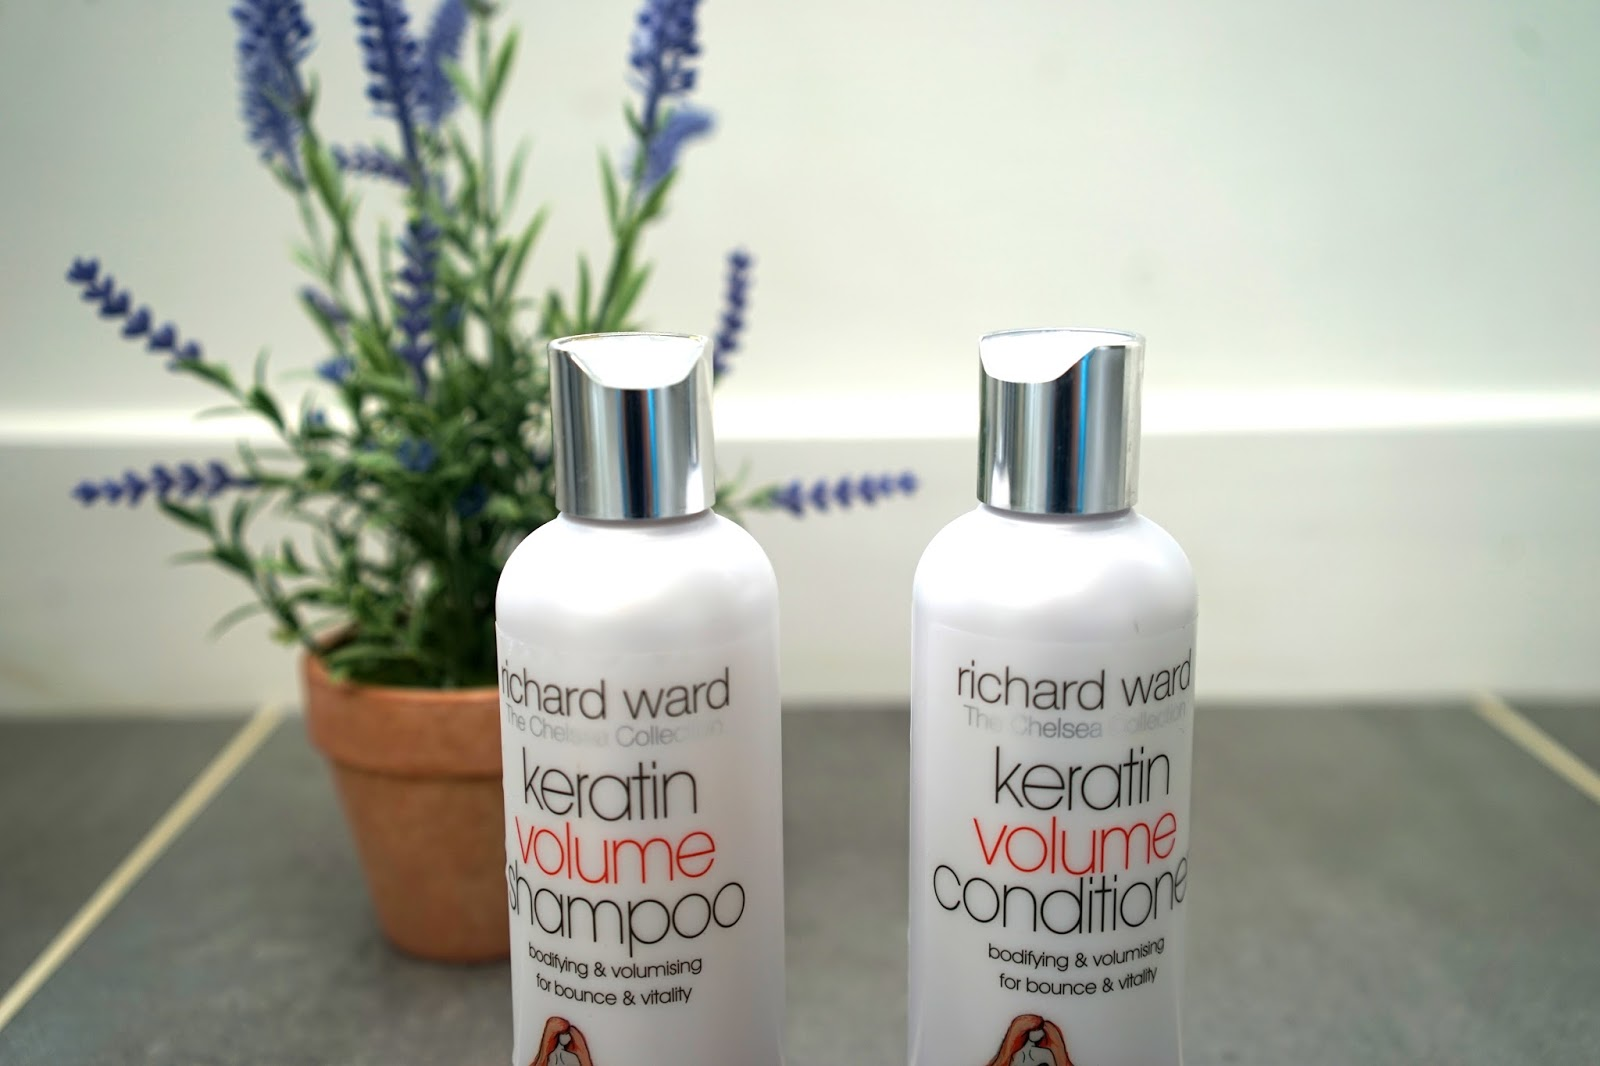 richard ward keratin volume shampoo